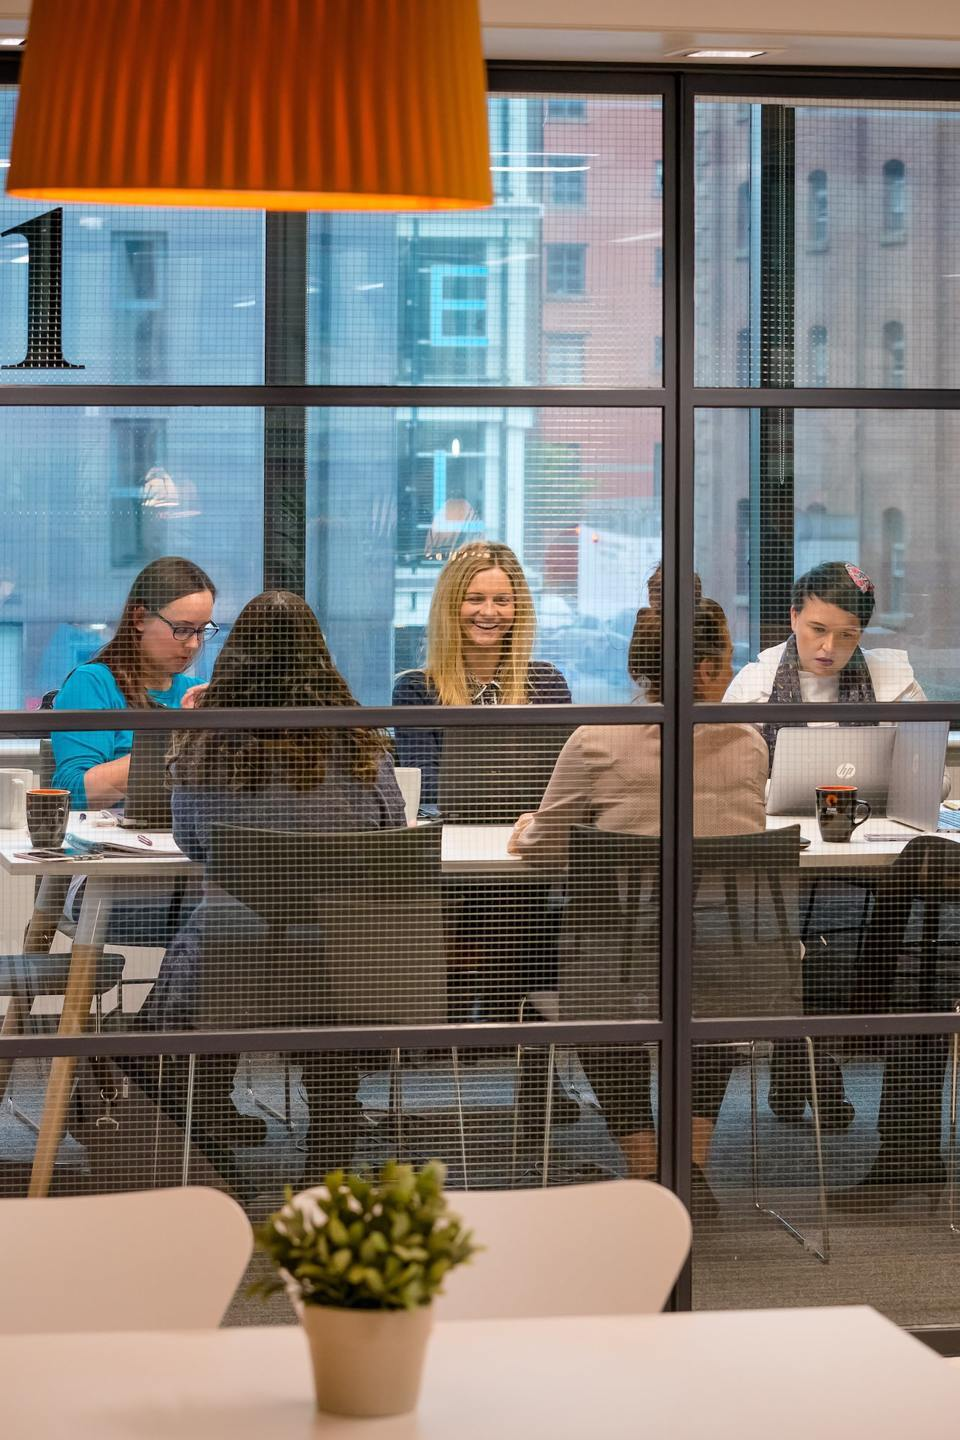 A group of people behind a mesh patterned office screen sat working together in a meeting room at 111 piccadilly